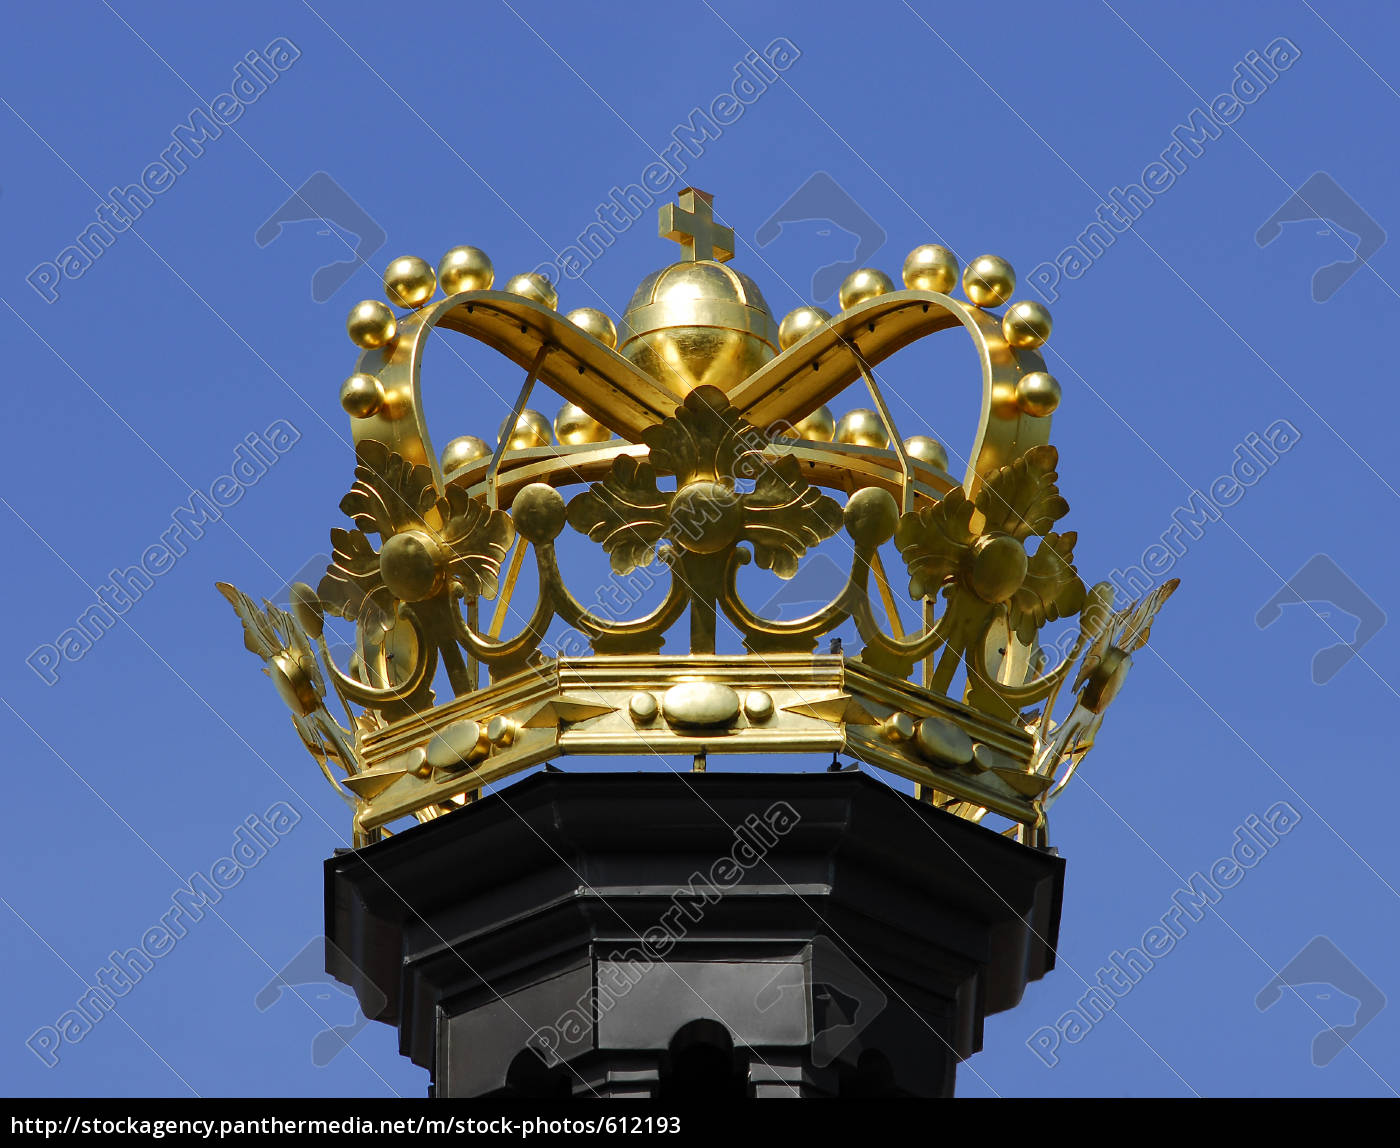 gold, crown - 612193